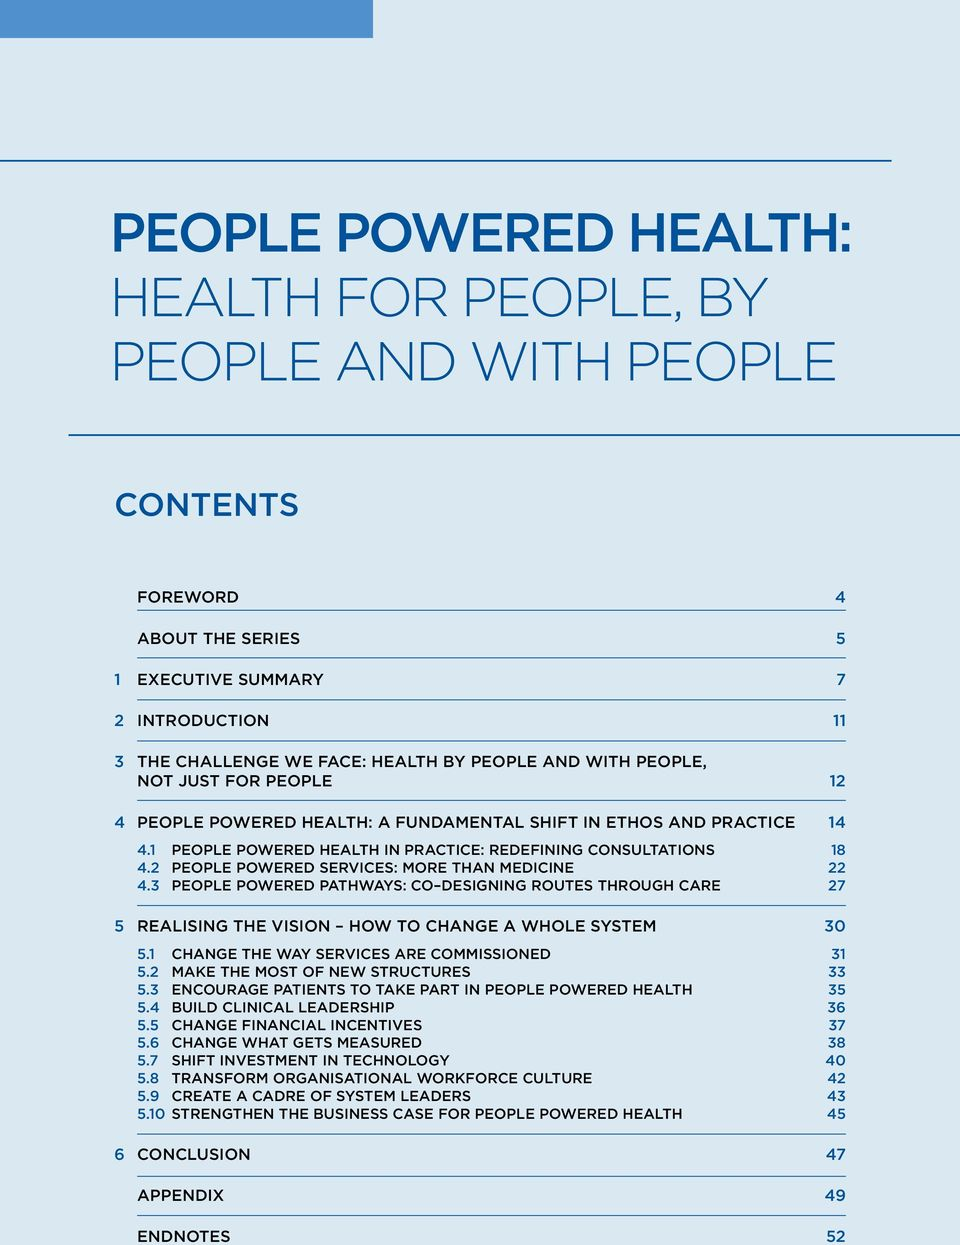 2 People Powered Services: more than medicine 22 4.3 People Powered Pathways: co designing routes through care 27 5 Realising the vision how to change a whole system 30 5.